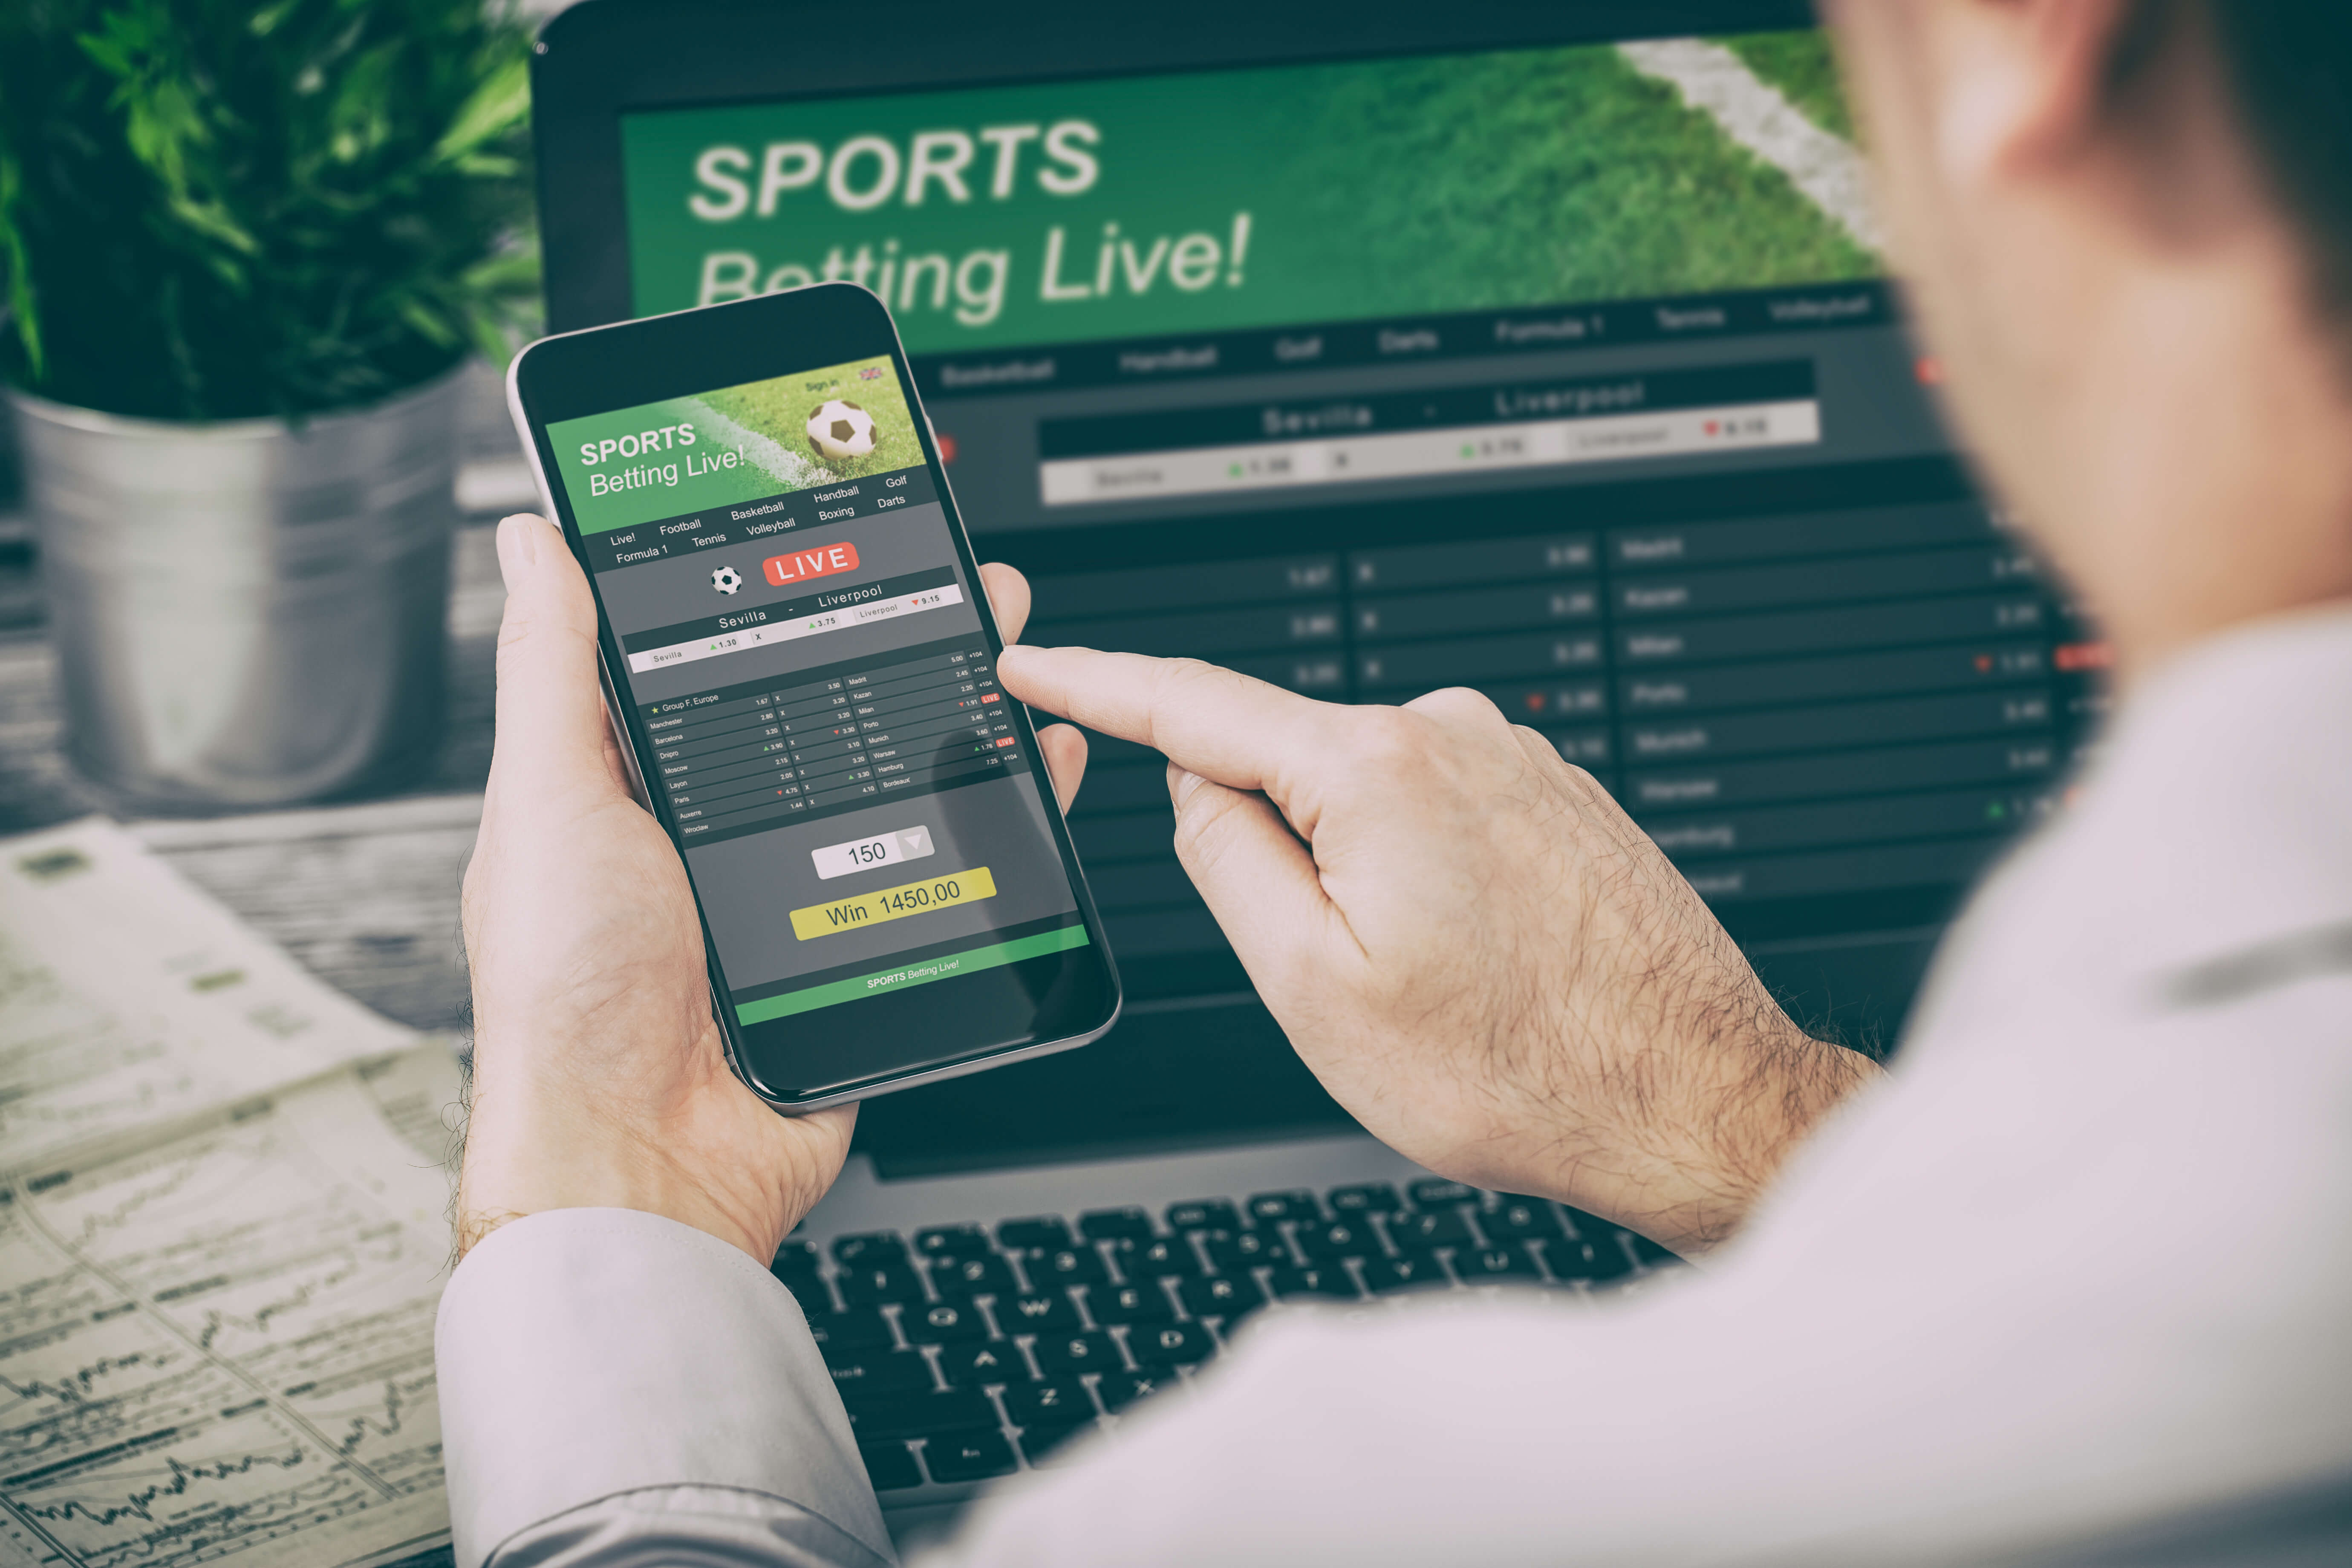 theScore review: All about the launch of the new mobile sportsbook